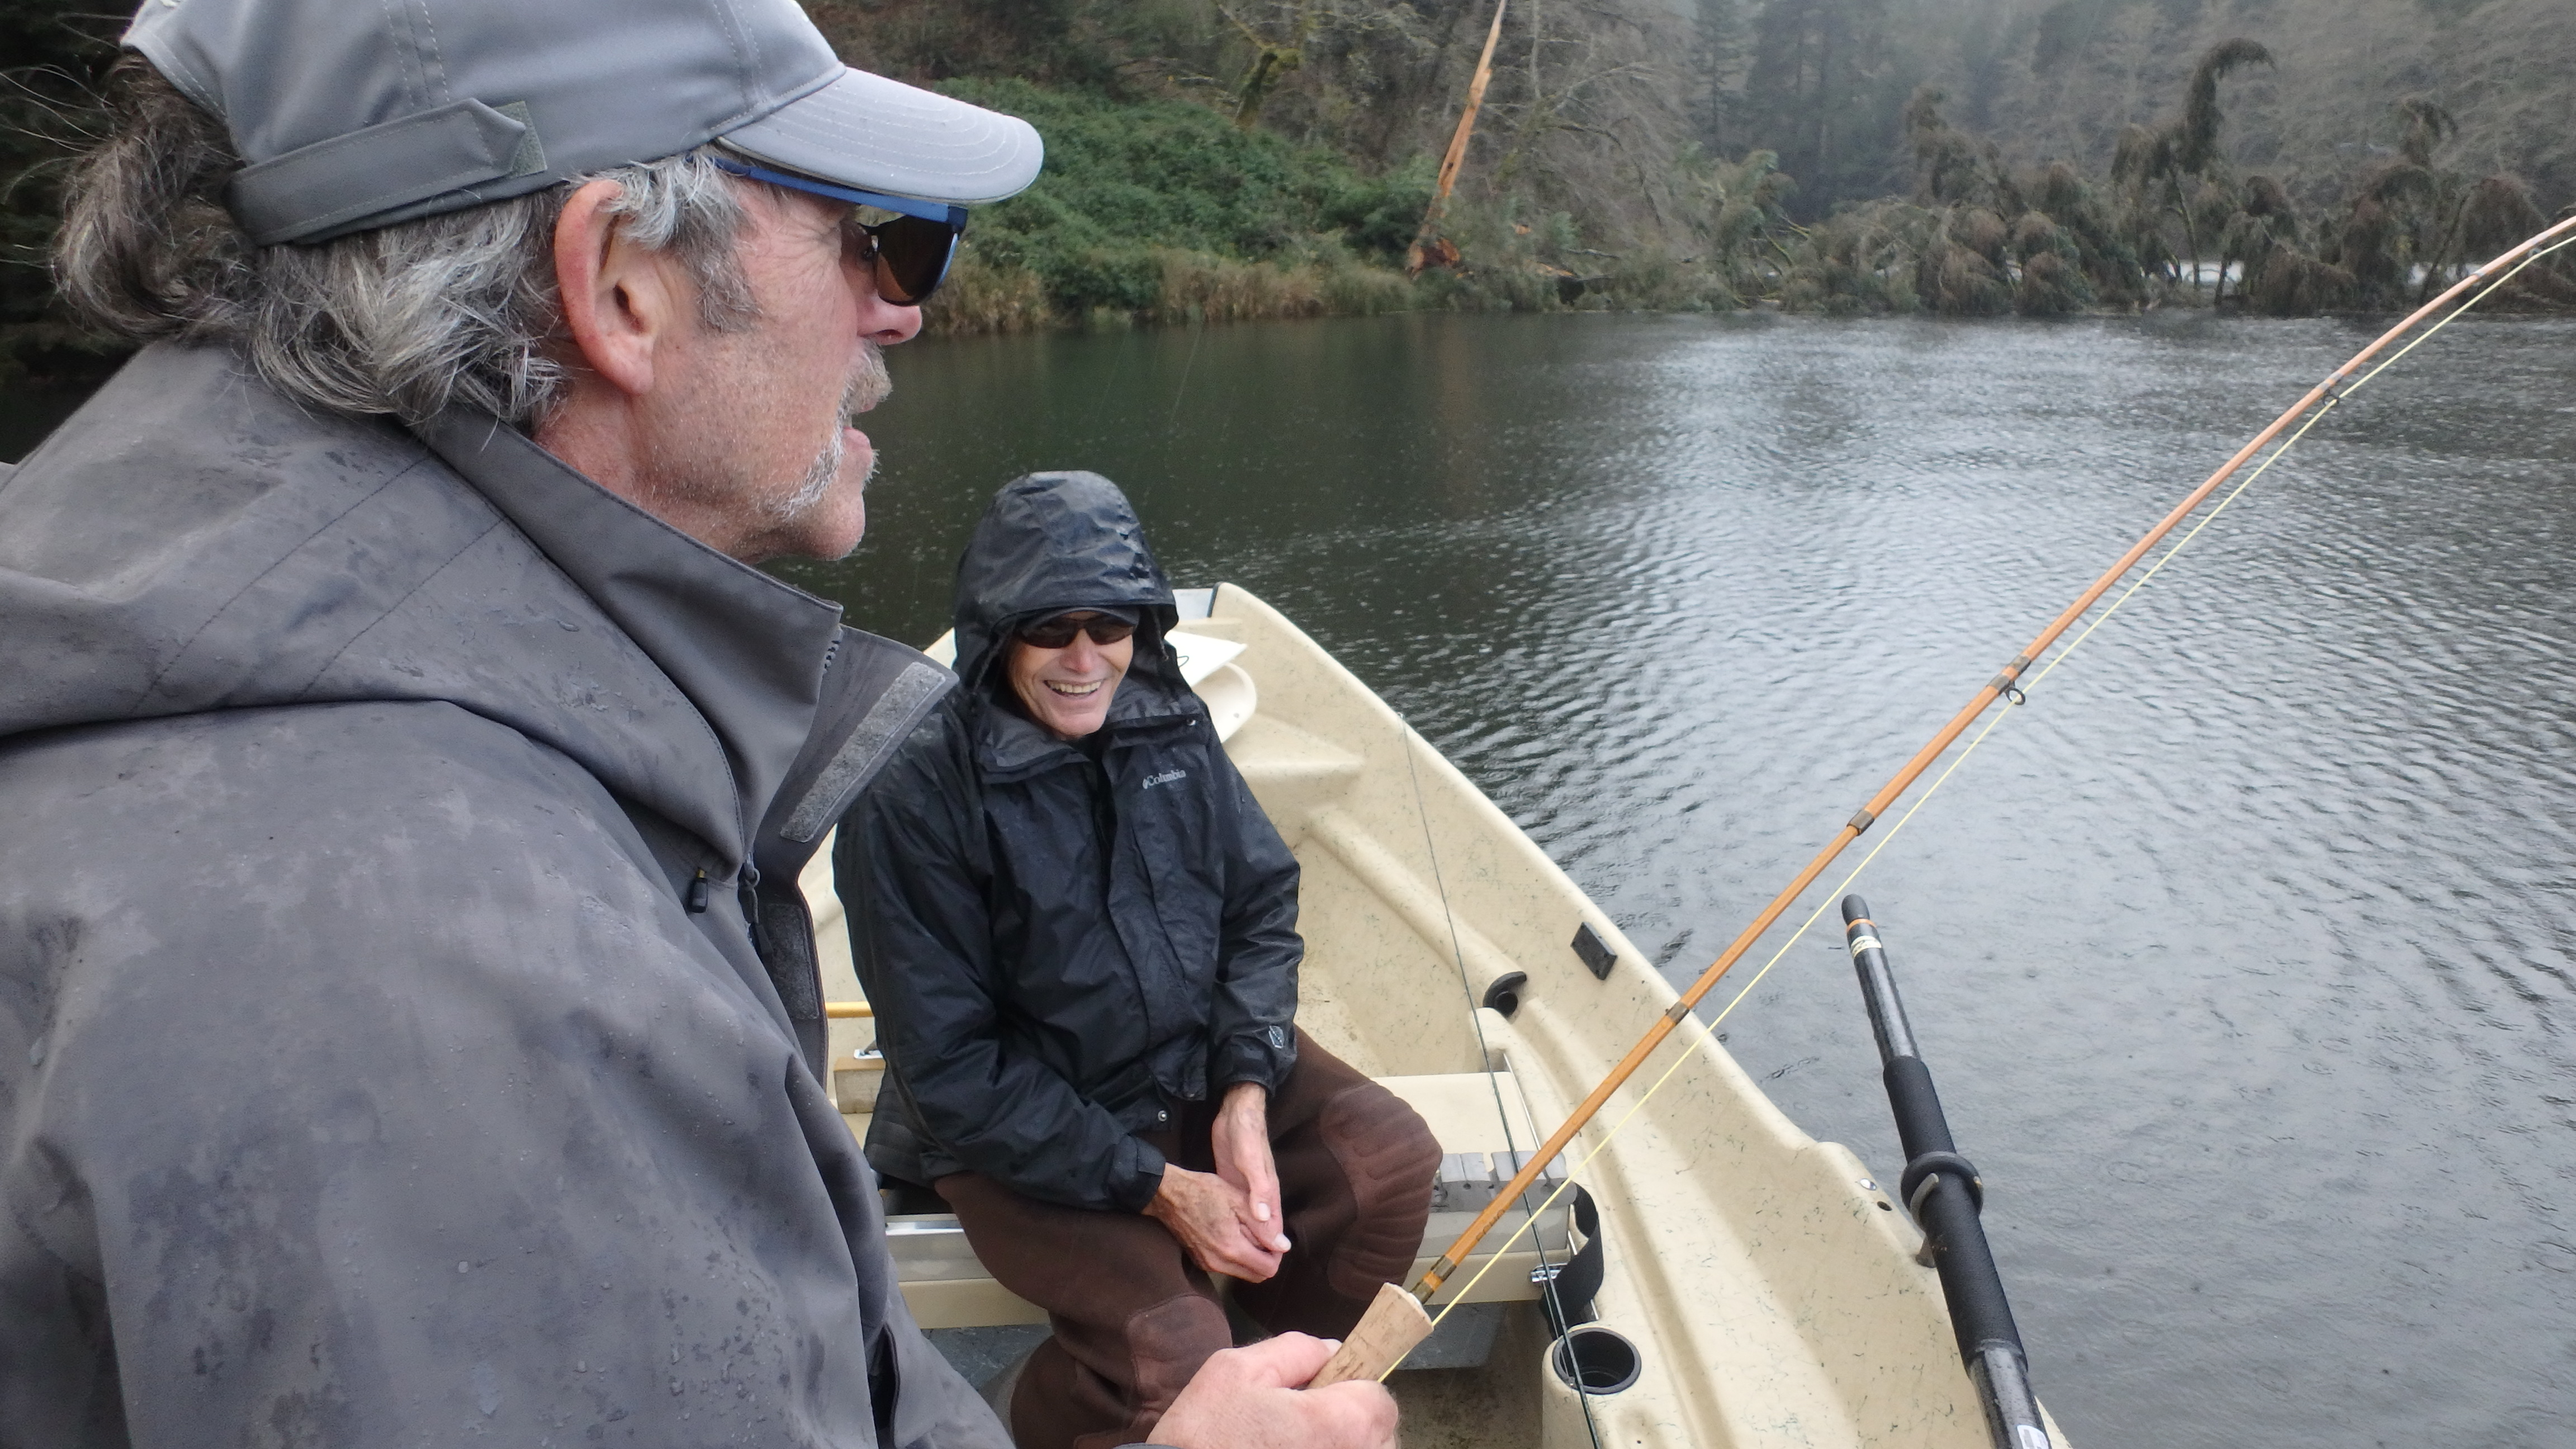 Town Lake Steelhead Report | The Caddis Fly: Oregon Fly